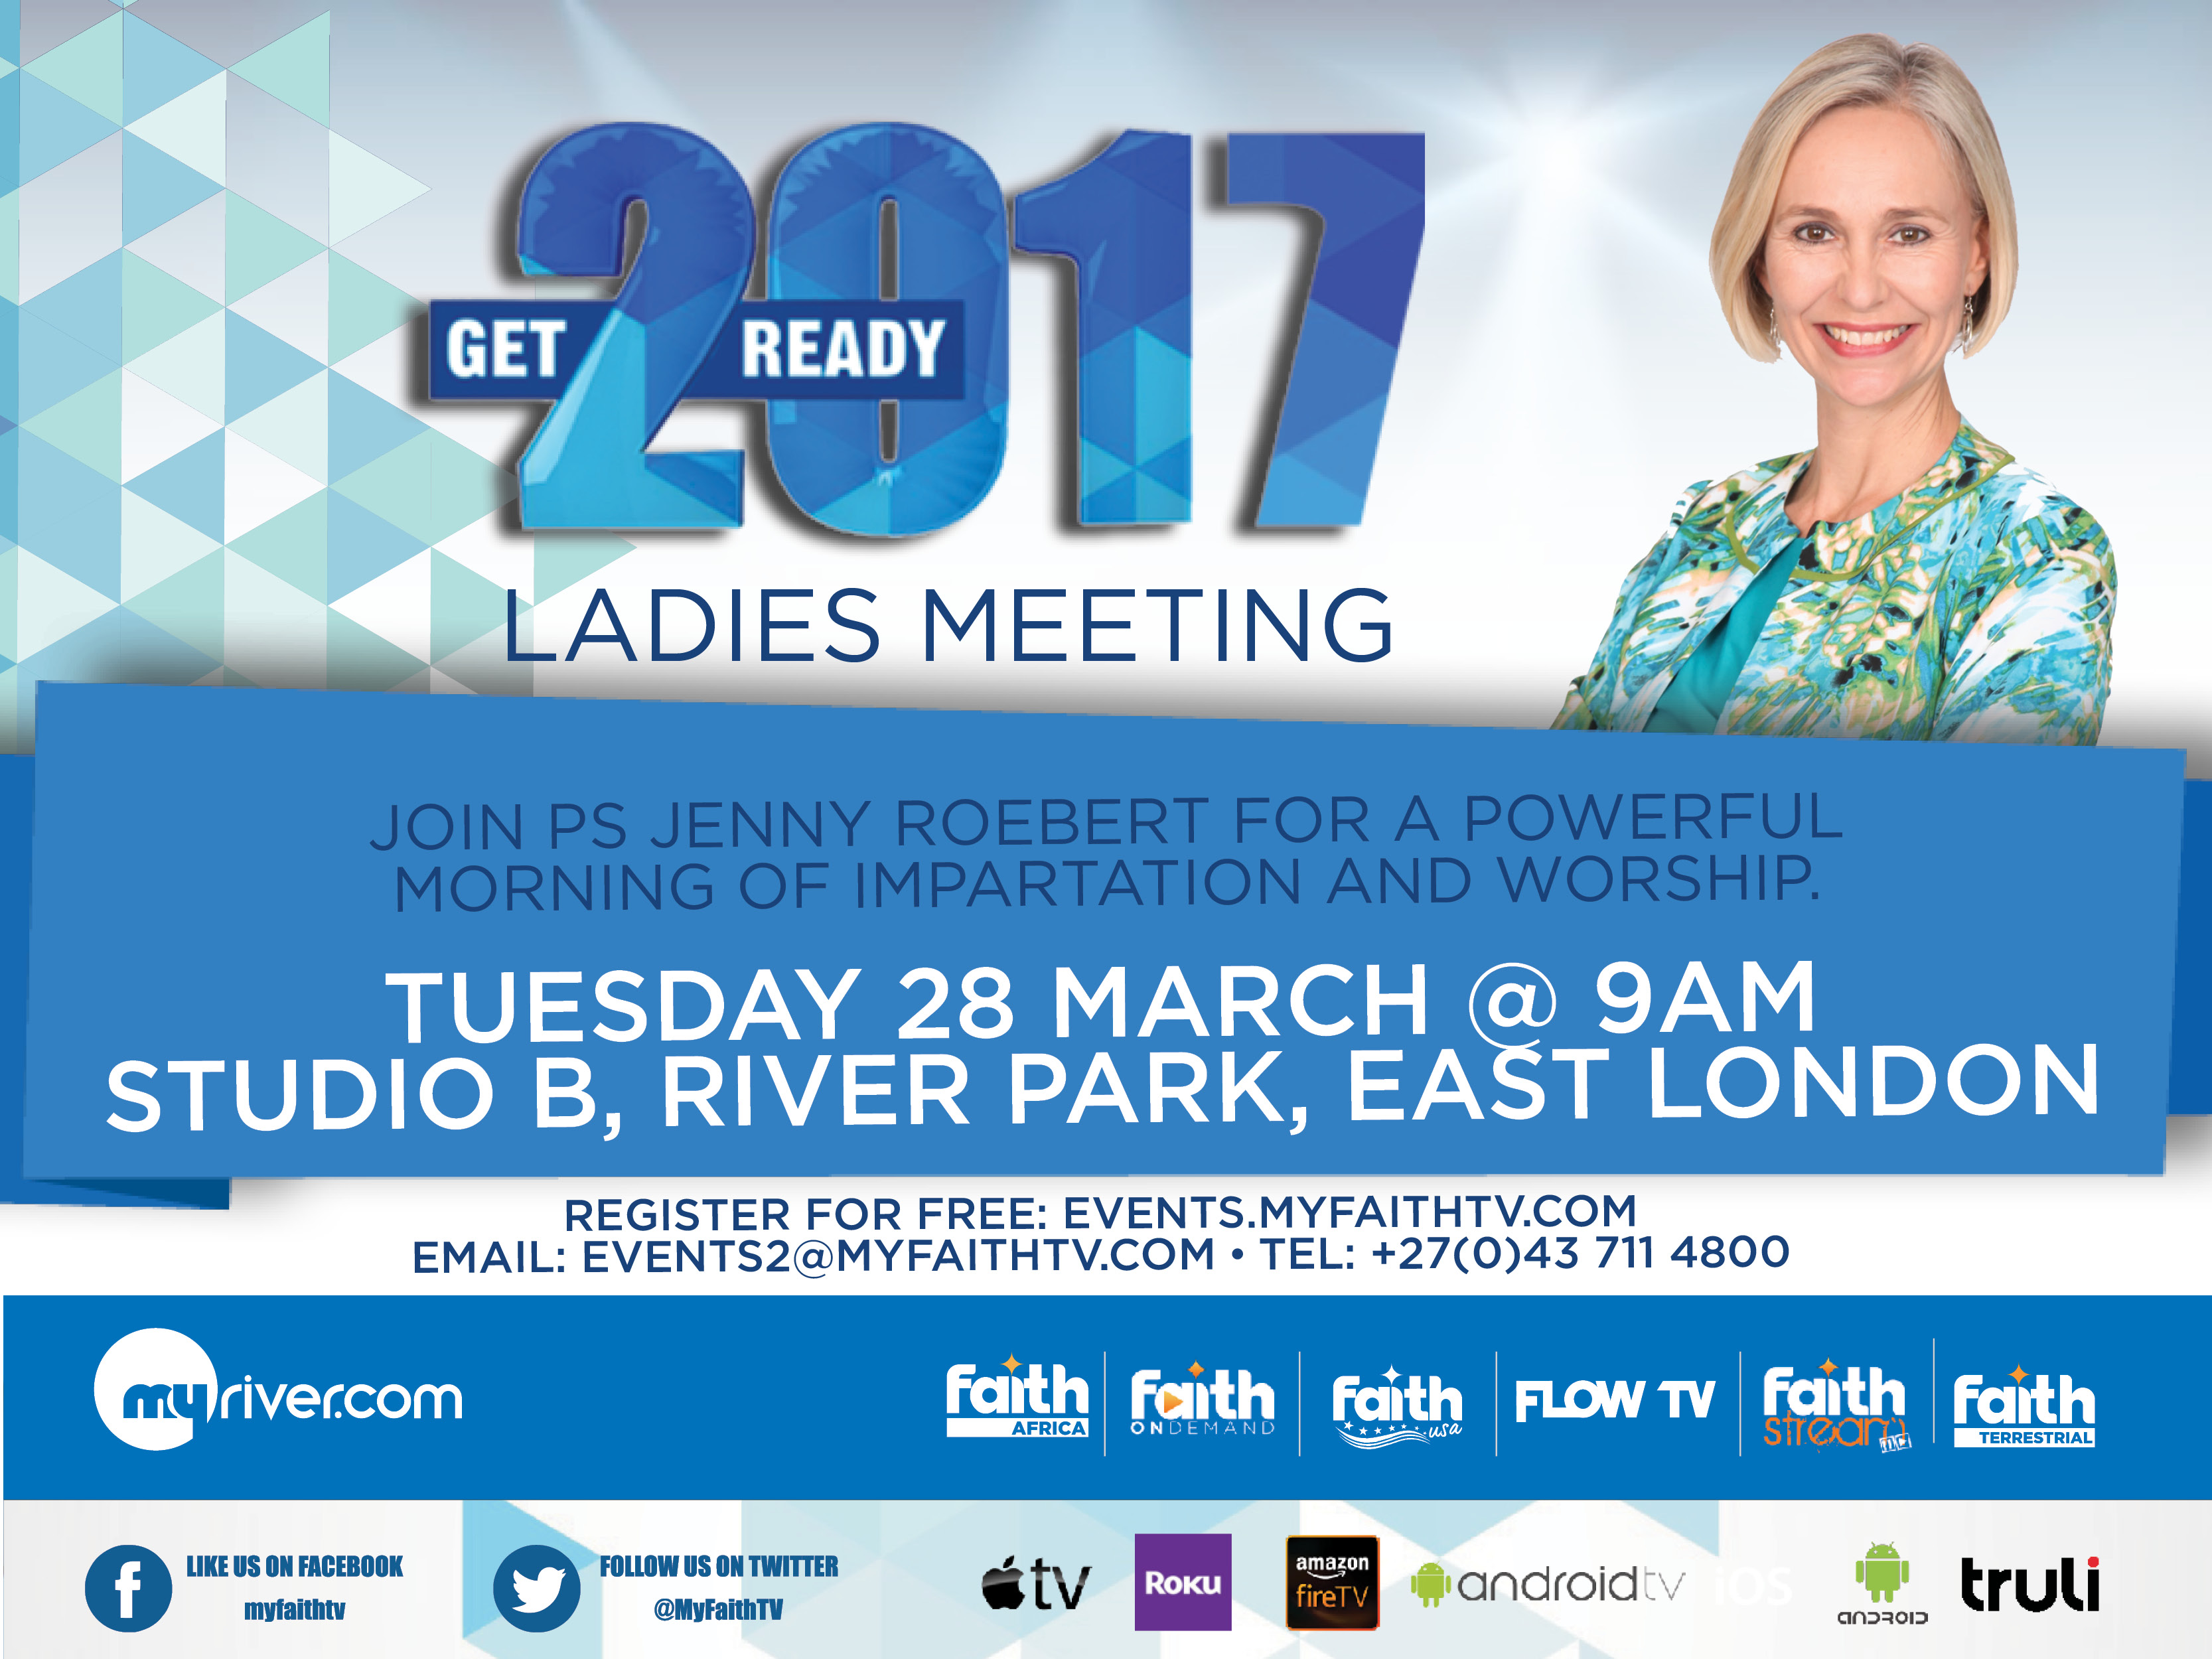 Get Ready 2017 Ladies Meeting